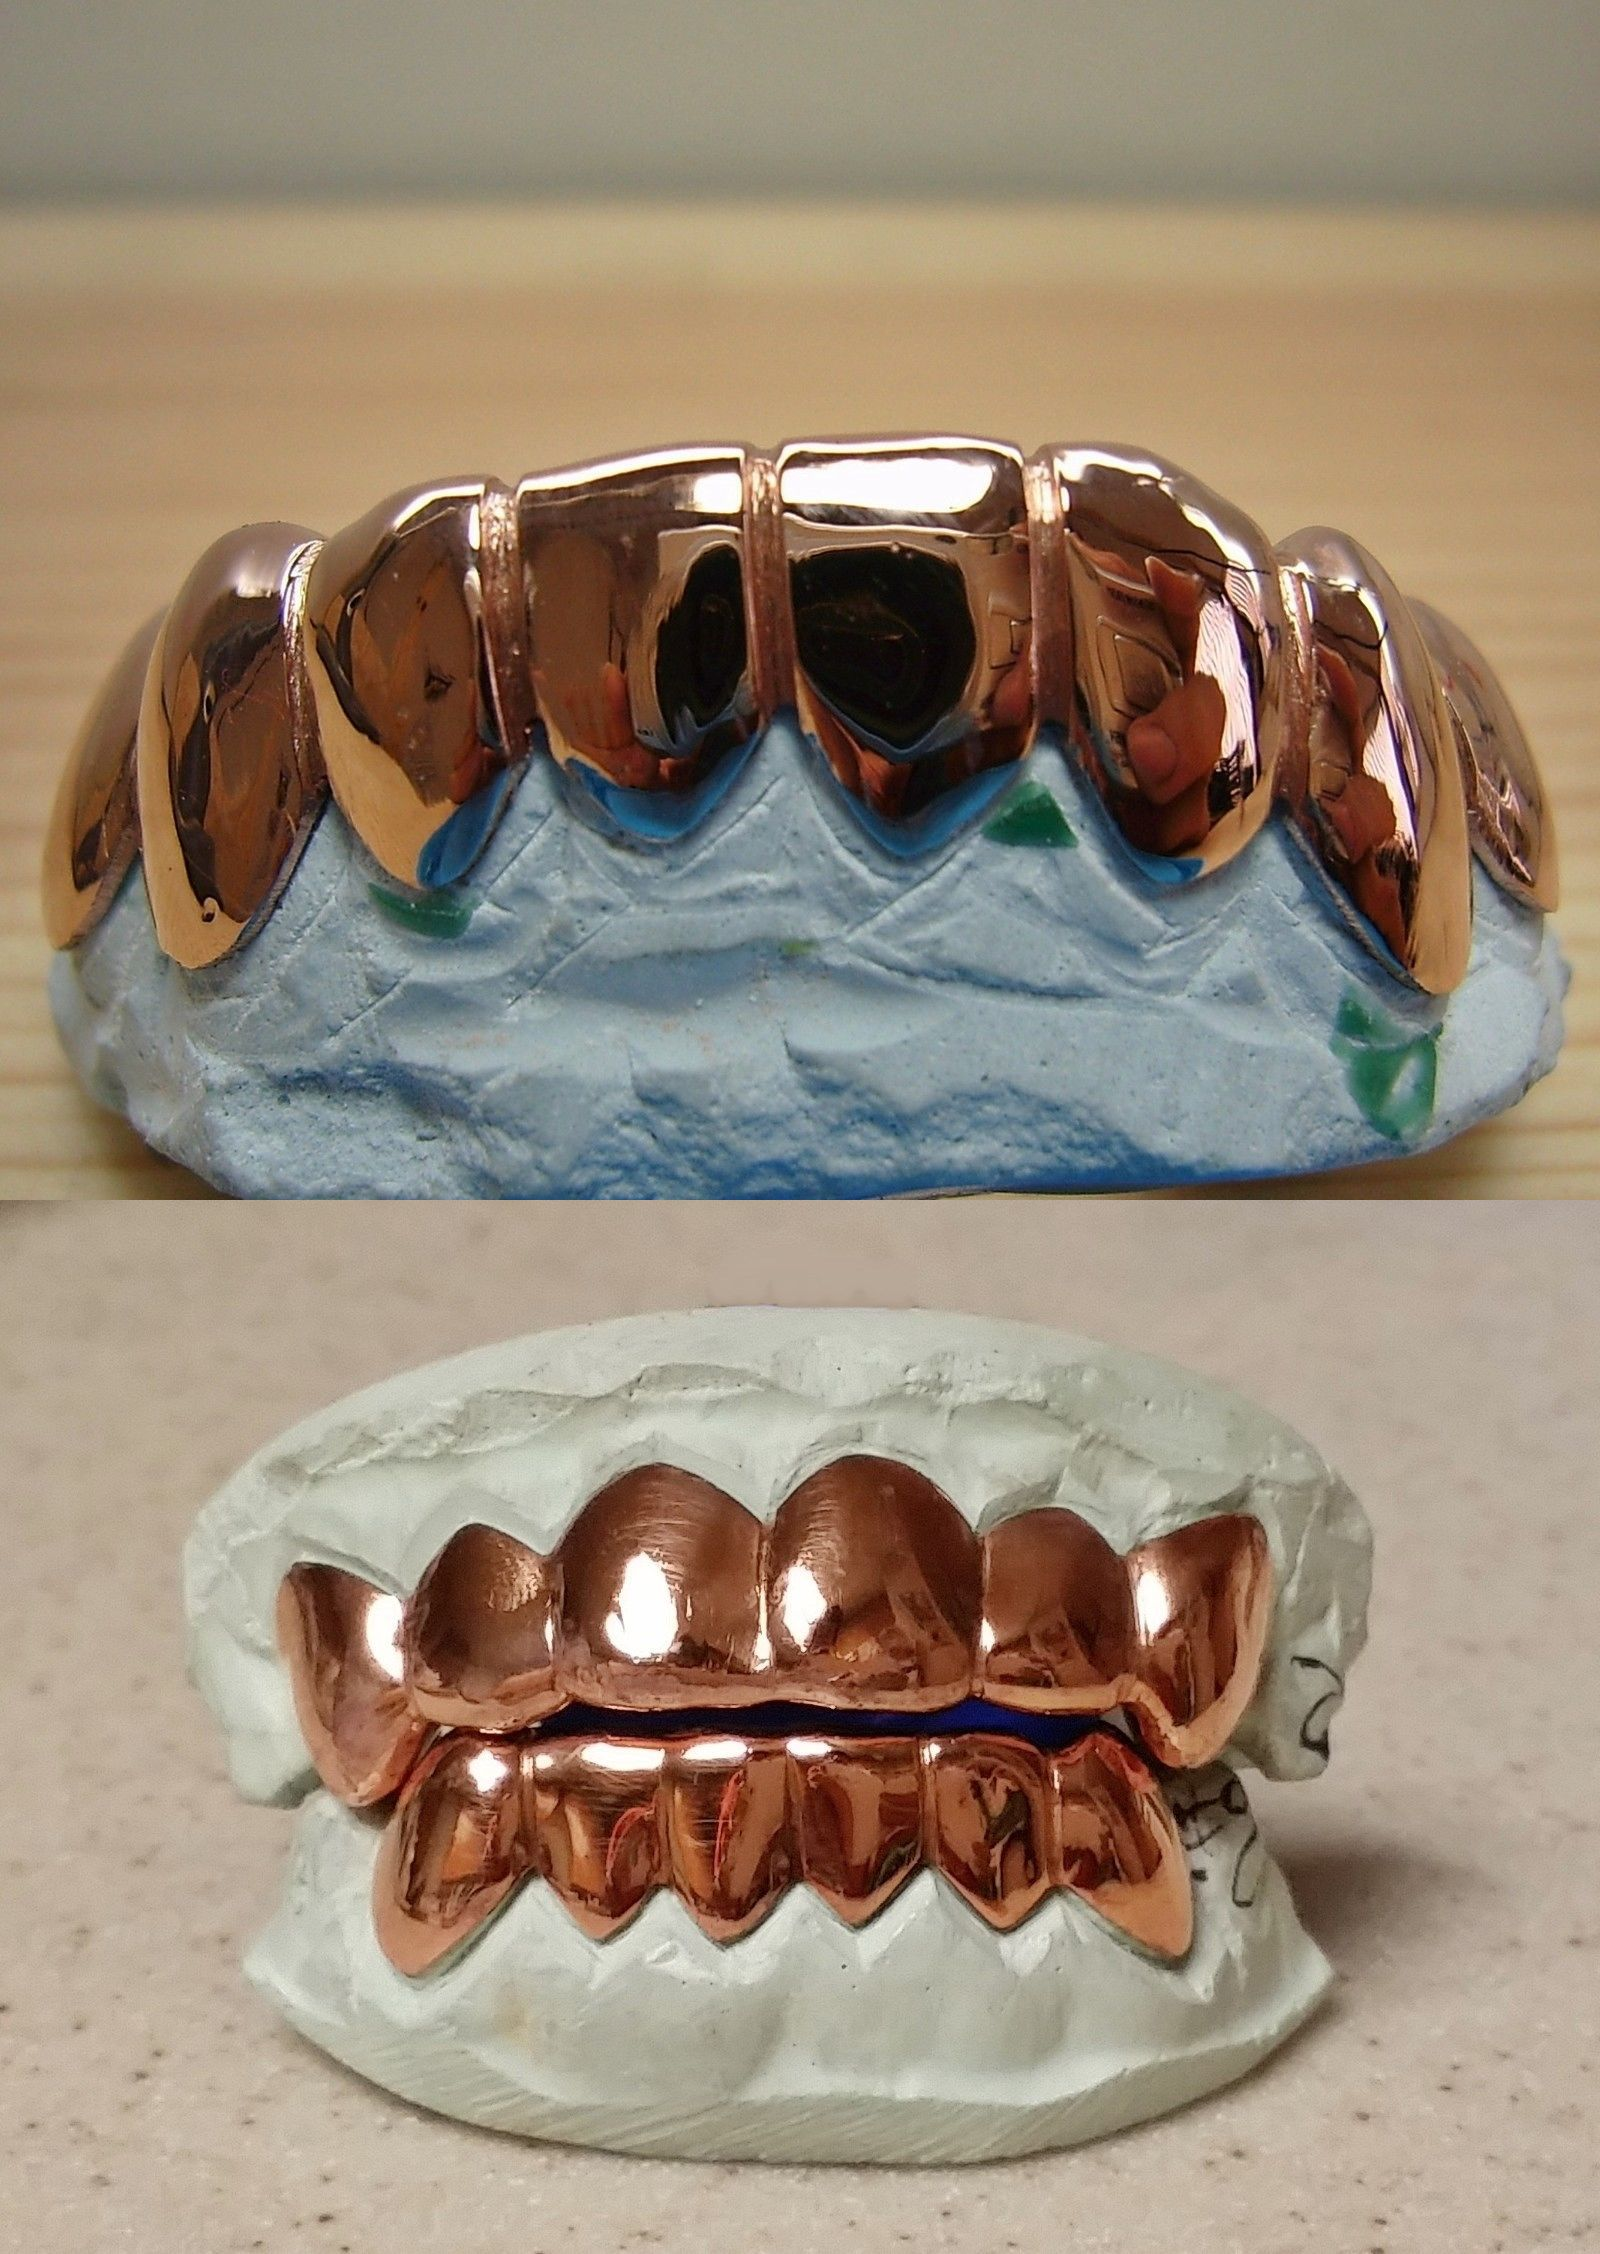 Grillz Dental Grills 152808 10k Or 14k Solid Rose Gold Custom Made Plain Grill Grillz Buy It Now Only 300 0